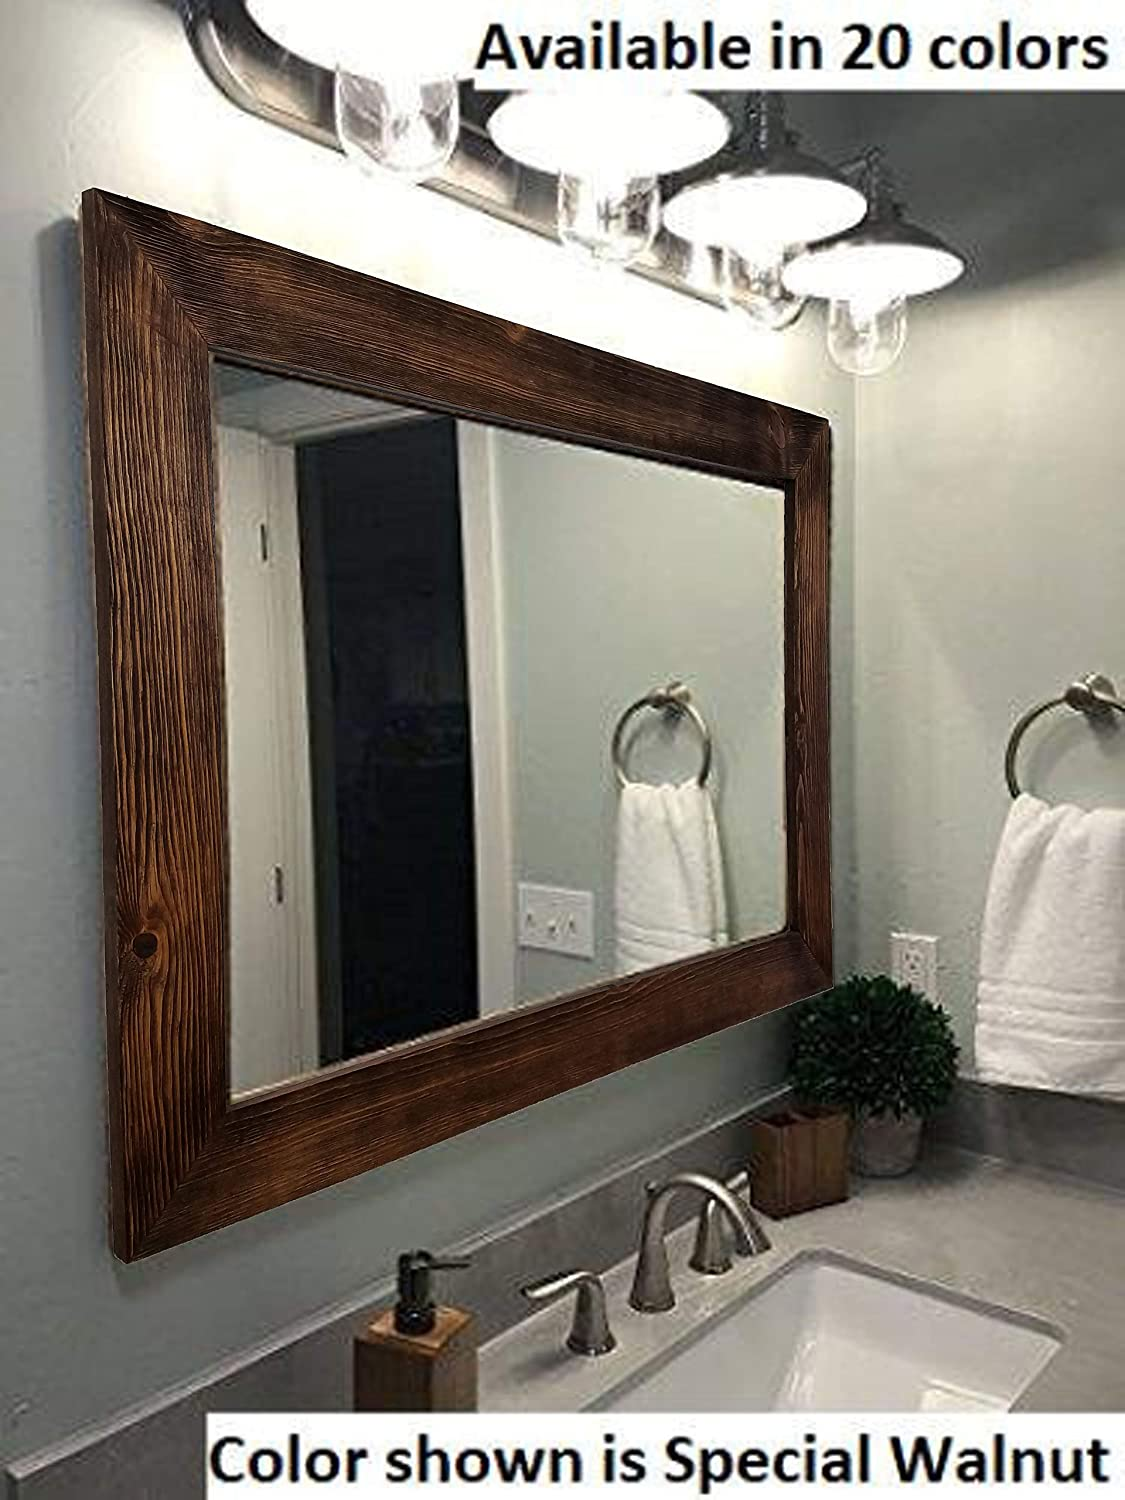 Admirable Shiplap Large Wood Framed Mirror Available In 4 Sizes And 20 Colors Shown In Special Walnut Stain Large Wall Mirror Rustic Barnwood Style Interior Design Ideas Gentotryabchikinfo